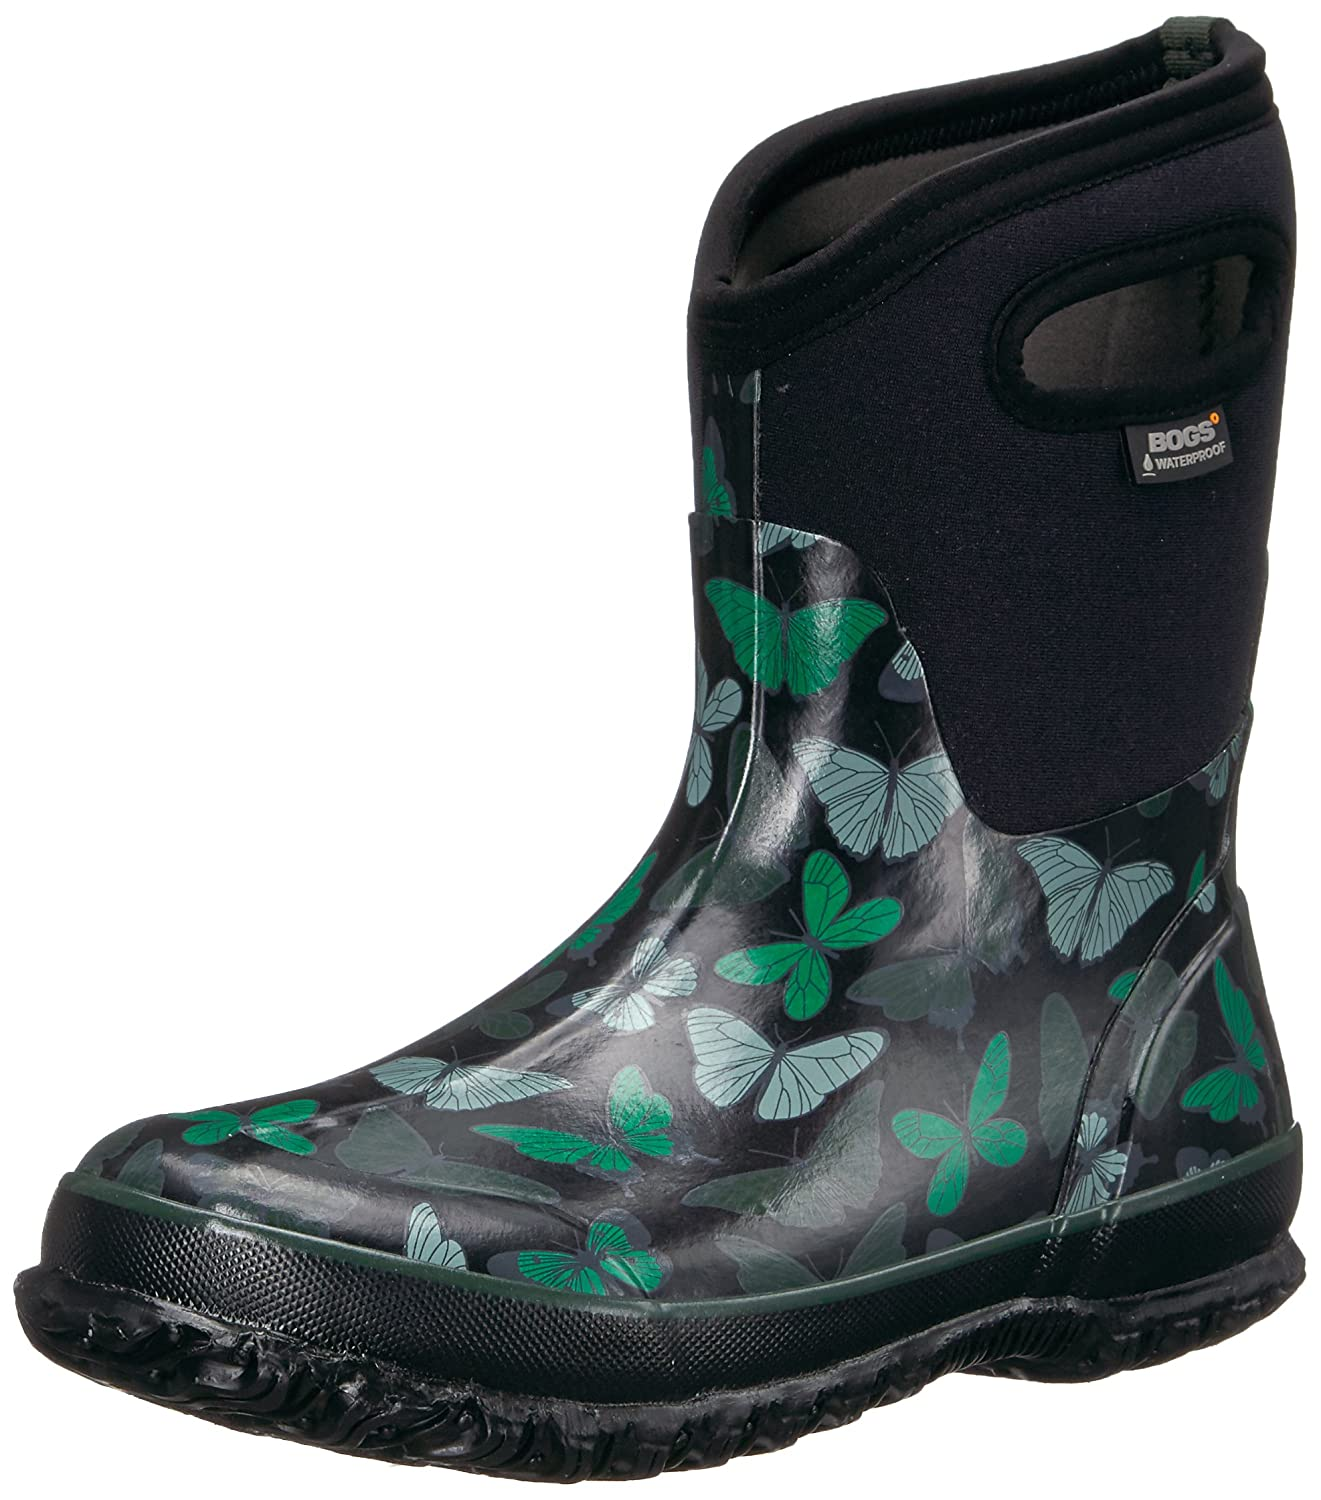 Bogs Women's Classic Butterflies Mid Snow Boot B01MZD4JVX 6 B(M) US|Black/Multi